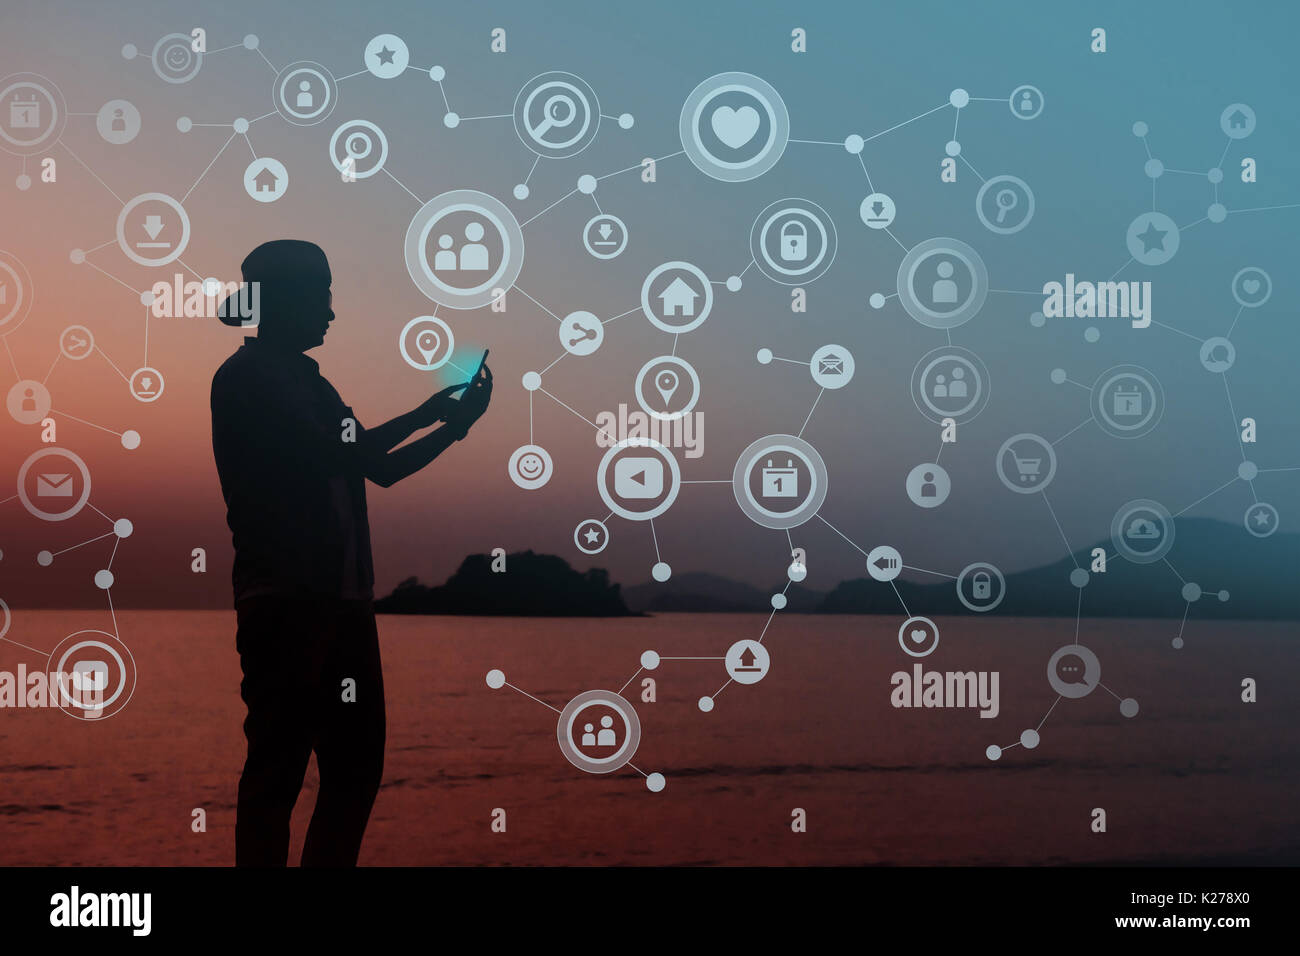 Always Connected concept, Silhouette of Young human using smart phone to Communicate in Network, Beach or Countryside as background - Stock Image